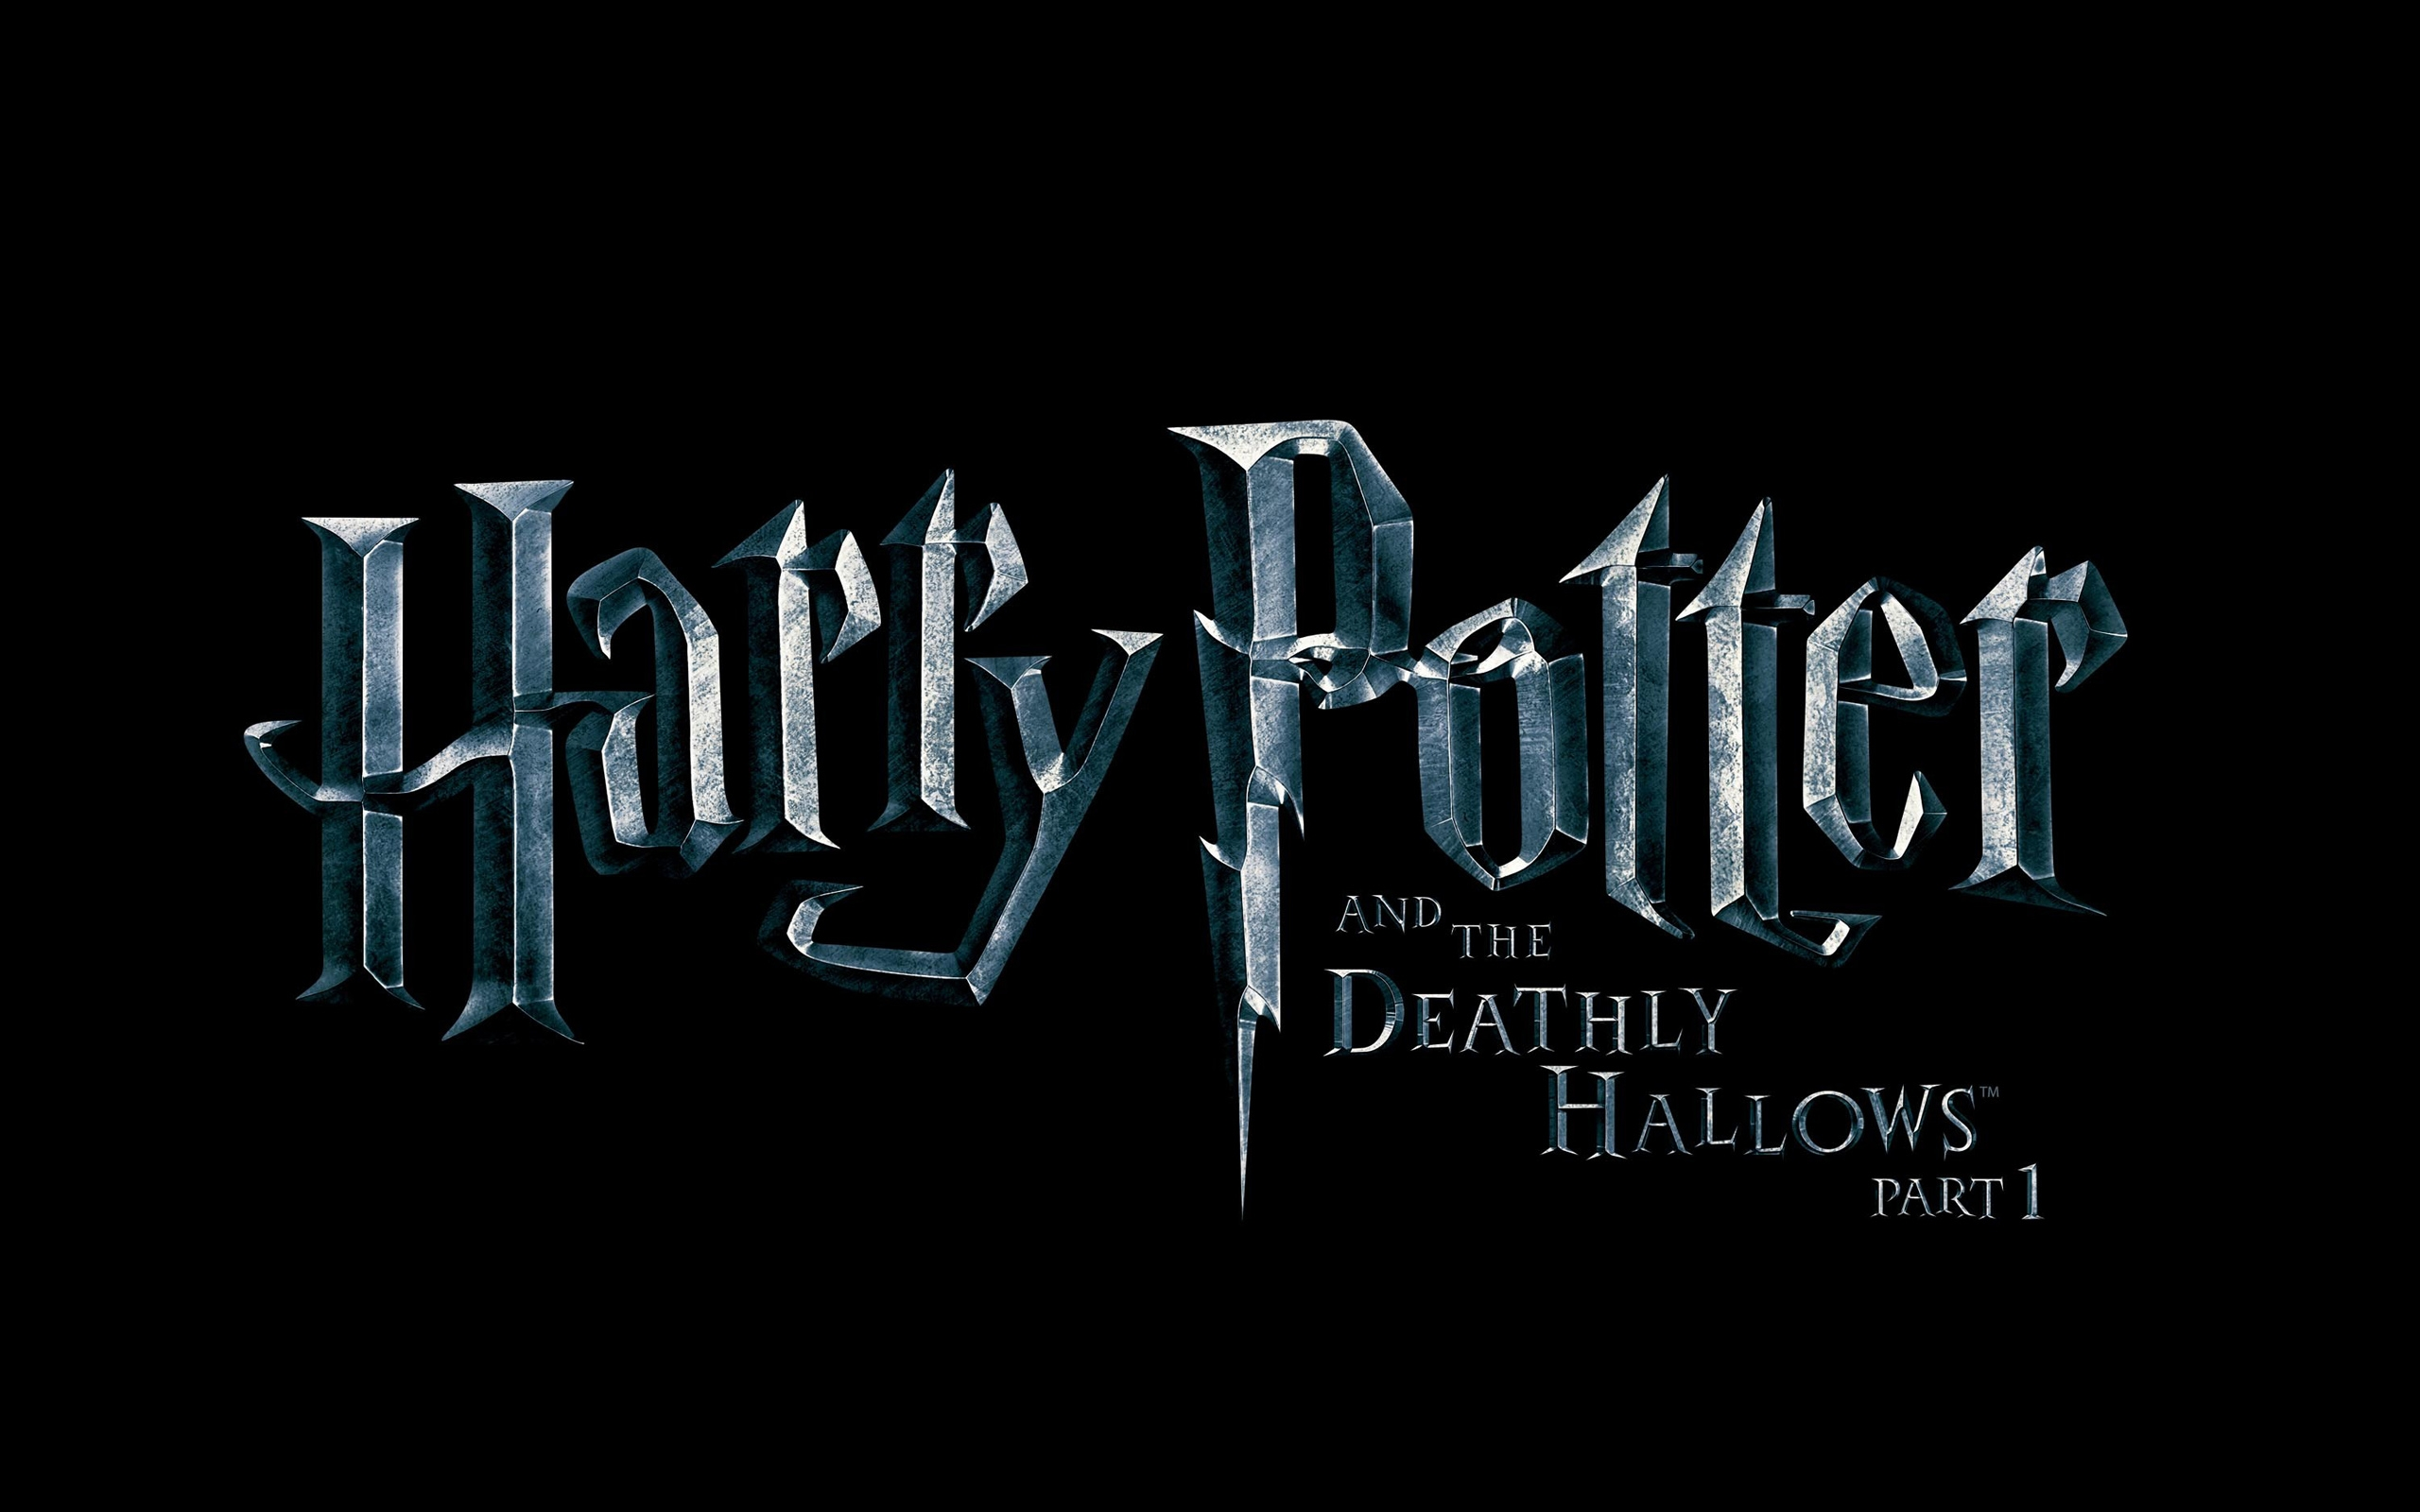 Most Inspiring Wallpaper Harry Potter Star Wars - harry-potter%3A-deathly-hallows-wallpapers_23311_2560x1600  Perfect Image Reference_53677.jpg